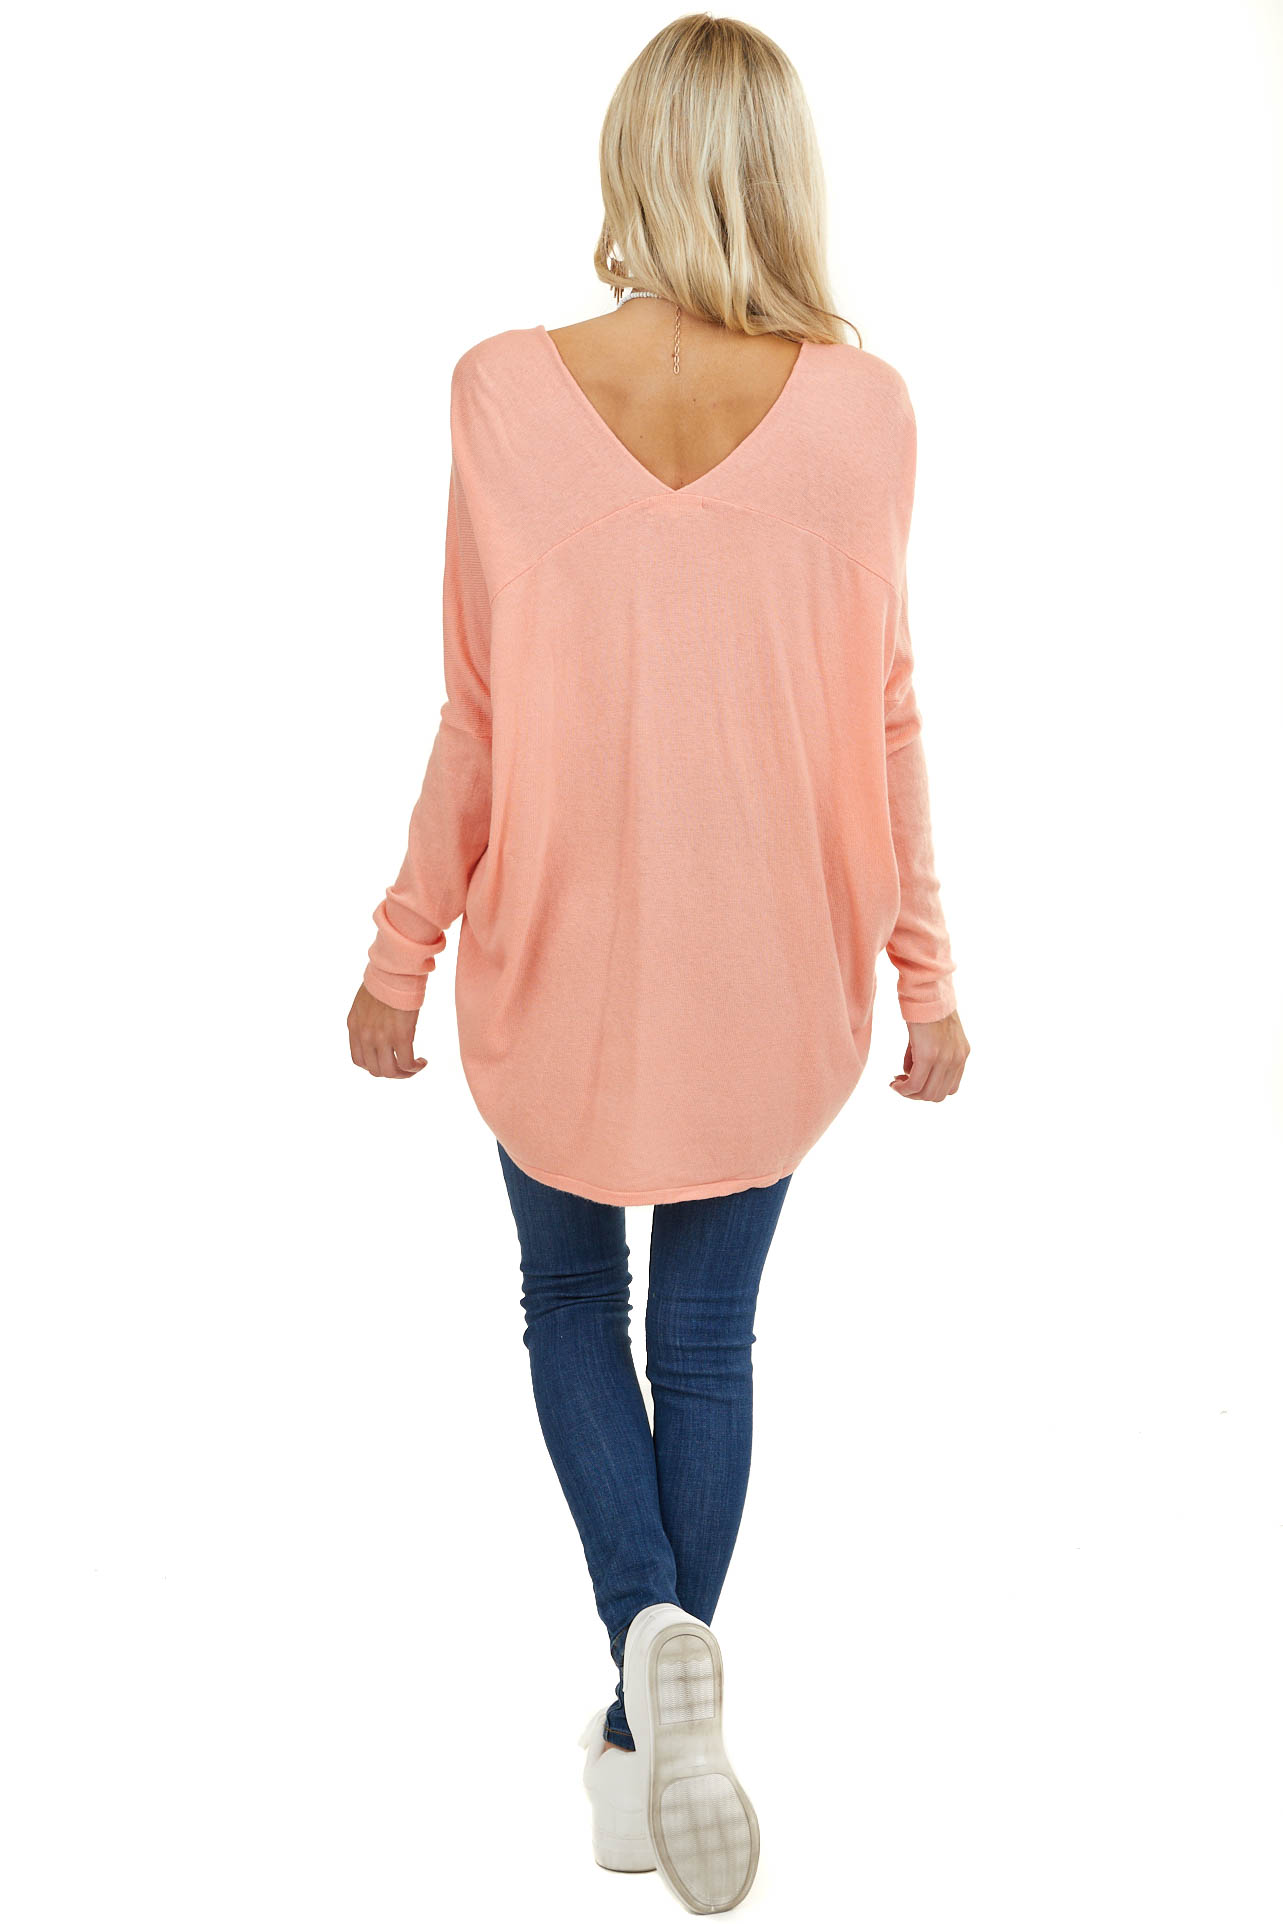 Light Coral Long Sleeve Top with V Neckline and High Low Hem